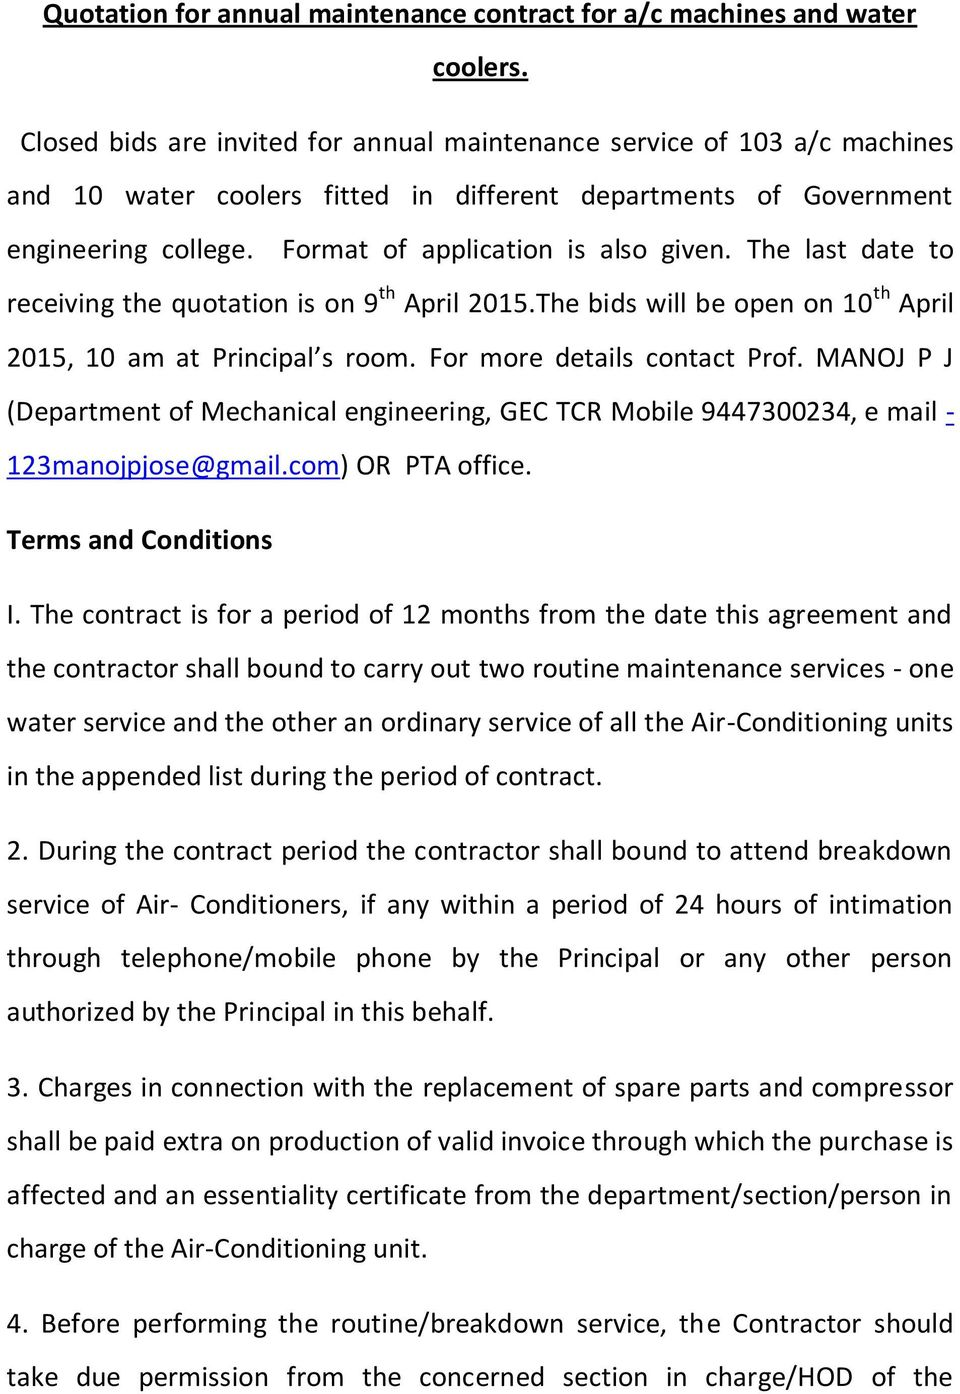 Quotation For Annual Maintenance Contract For Ac Machines And Water